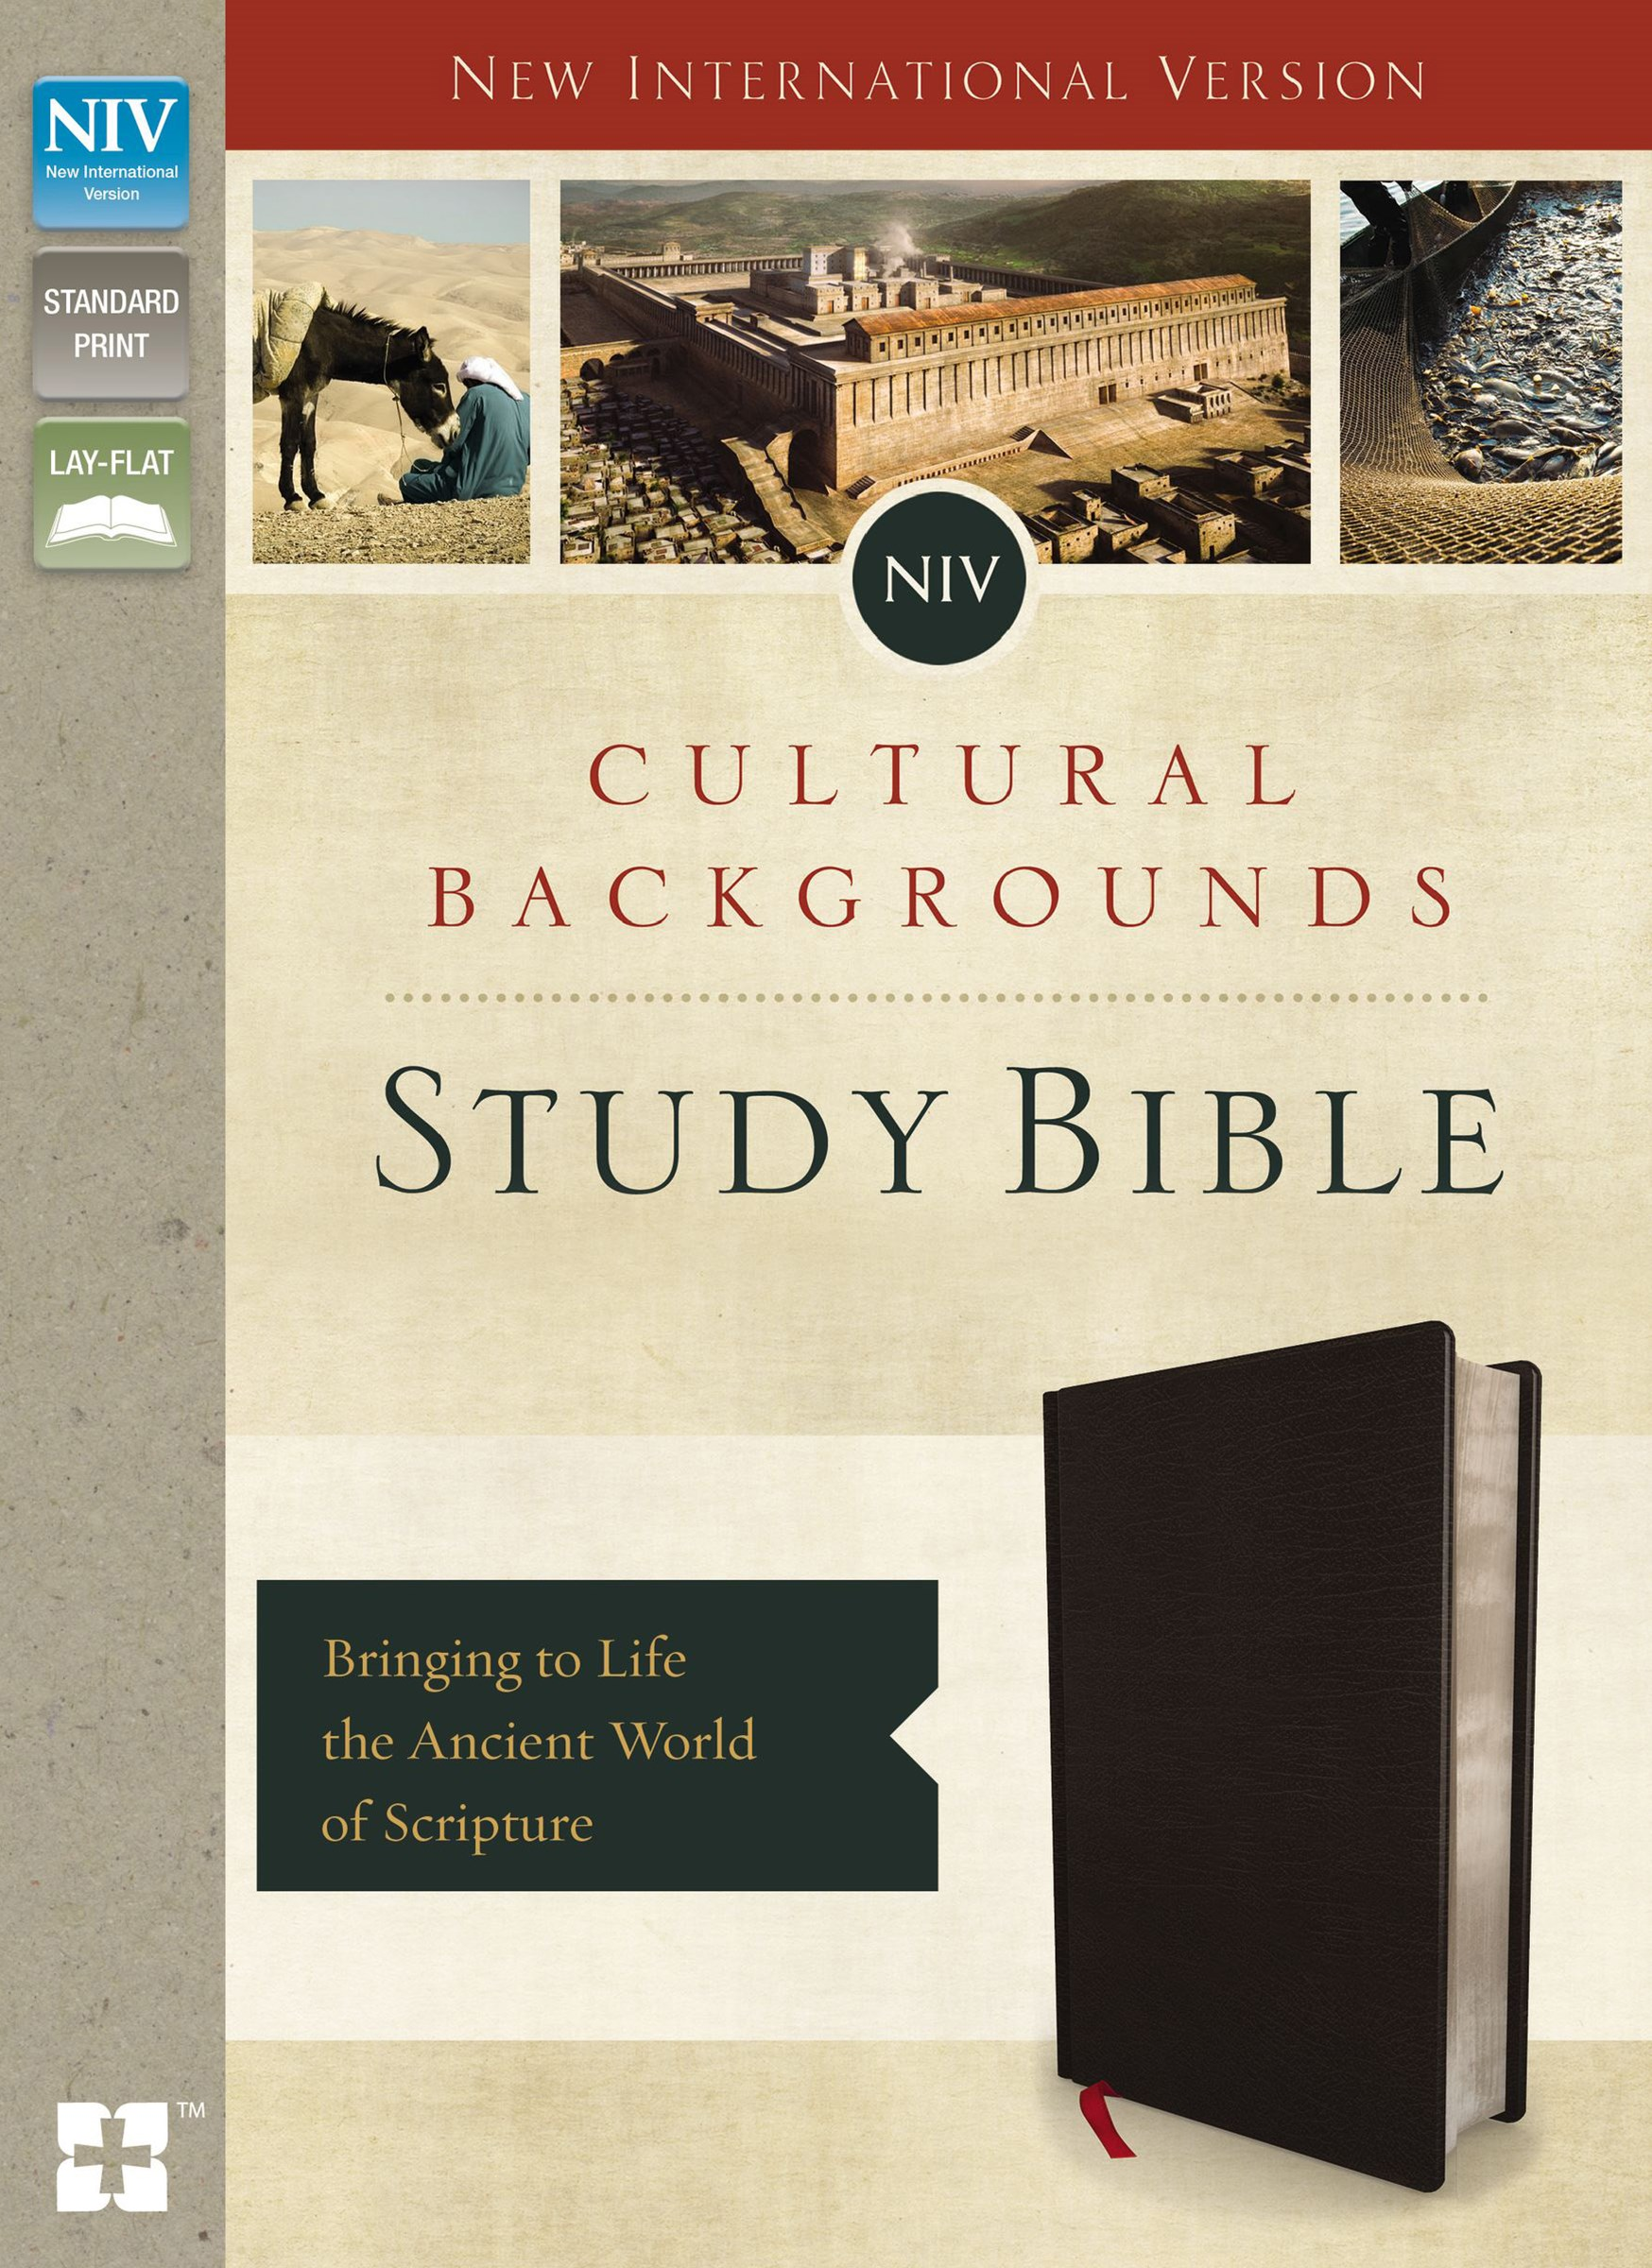 NIV, Cultural Backgrounds Study Bible, Indexed: Bringing To Life The Ancient World Of Scripture [Black]